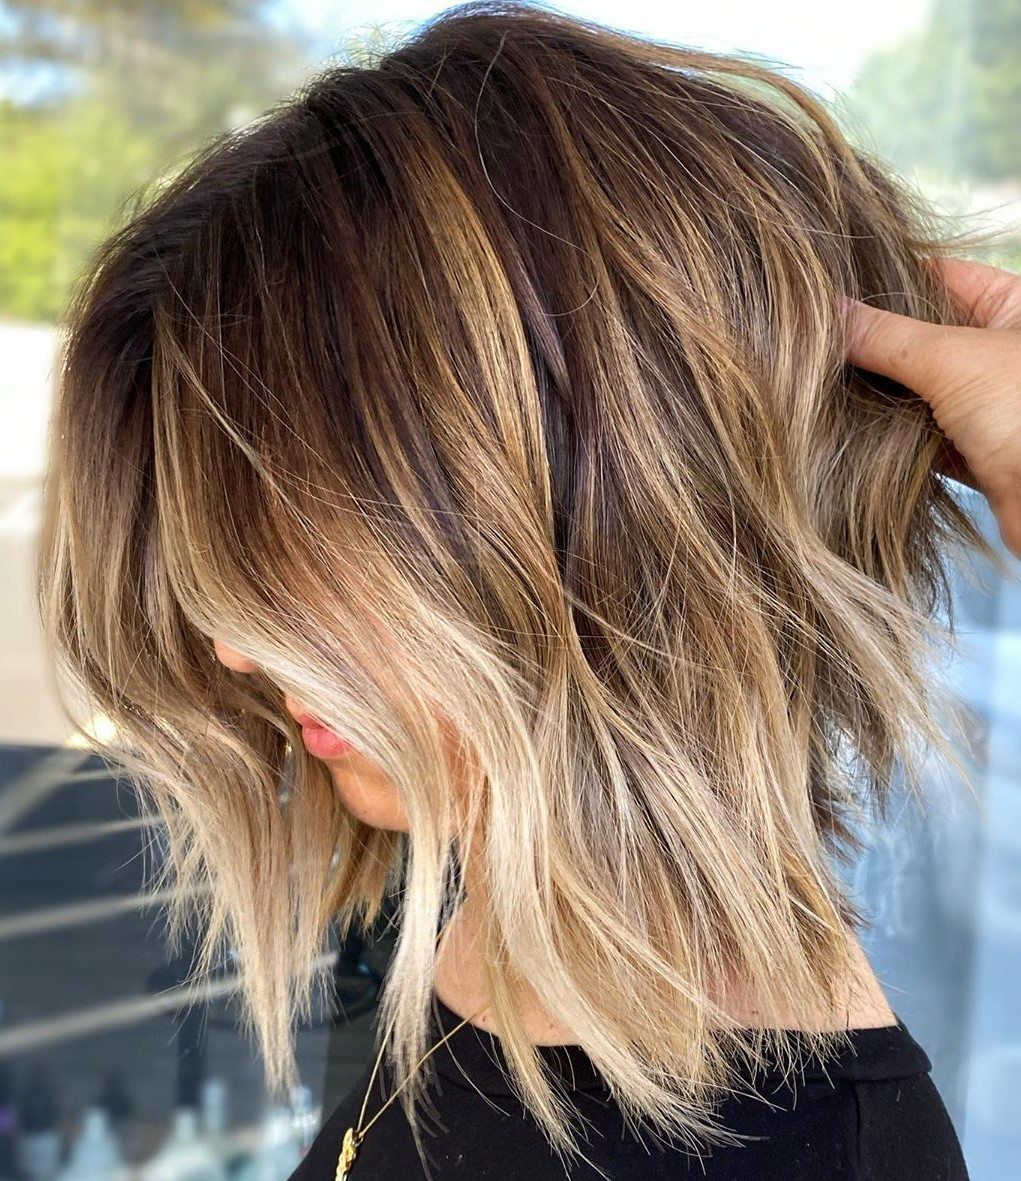 20 Effortlessly Hot Dirty Blonde Hair Ideas For 2020 Hair Adviser